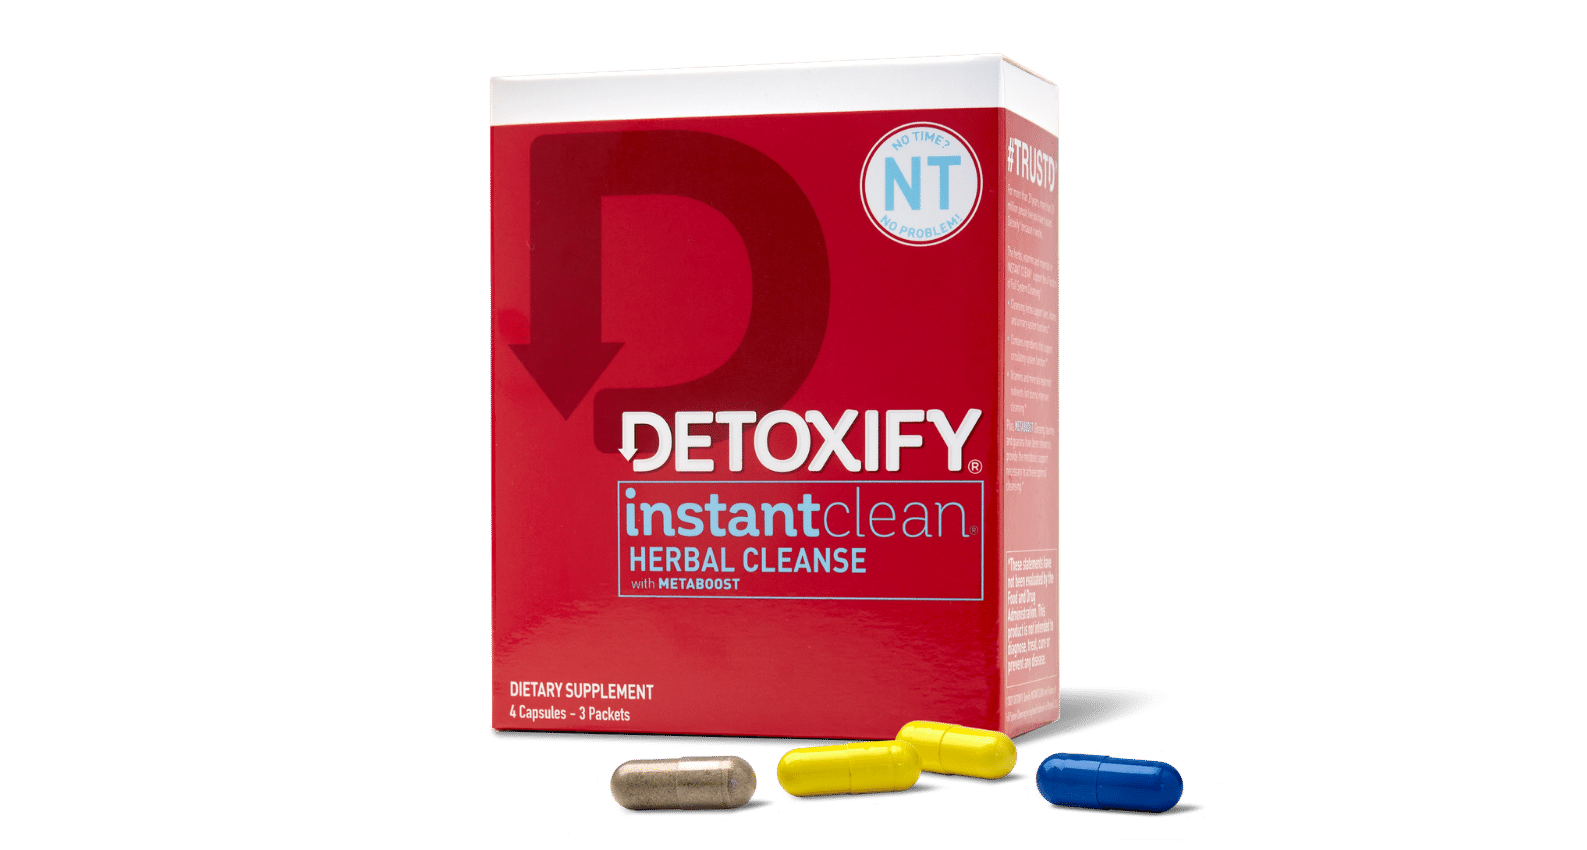 Detoxify Instant Clean harnesses the cleansing power of our one-day herbal cleansing drinks in four, sugar-free capsules.